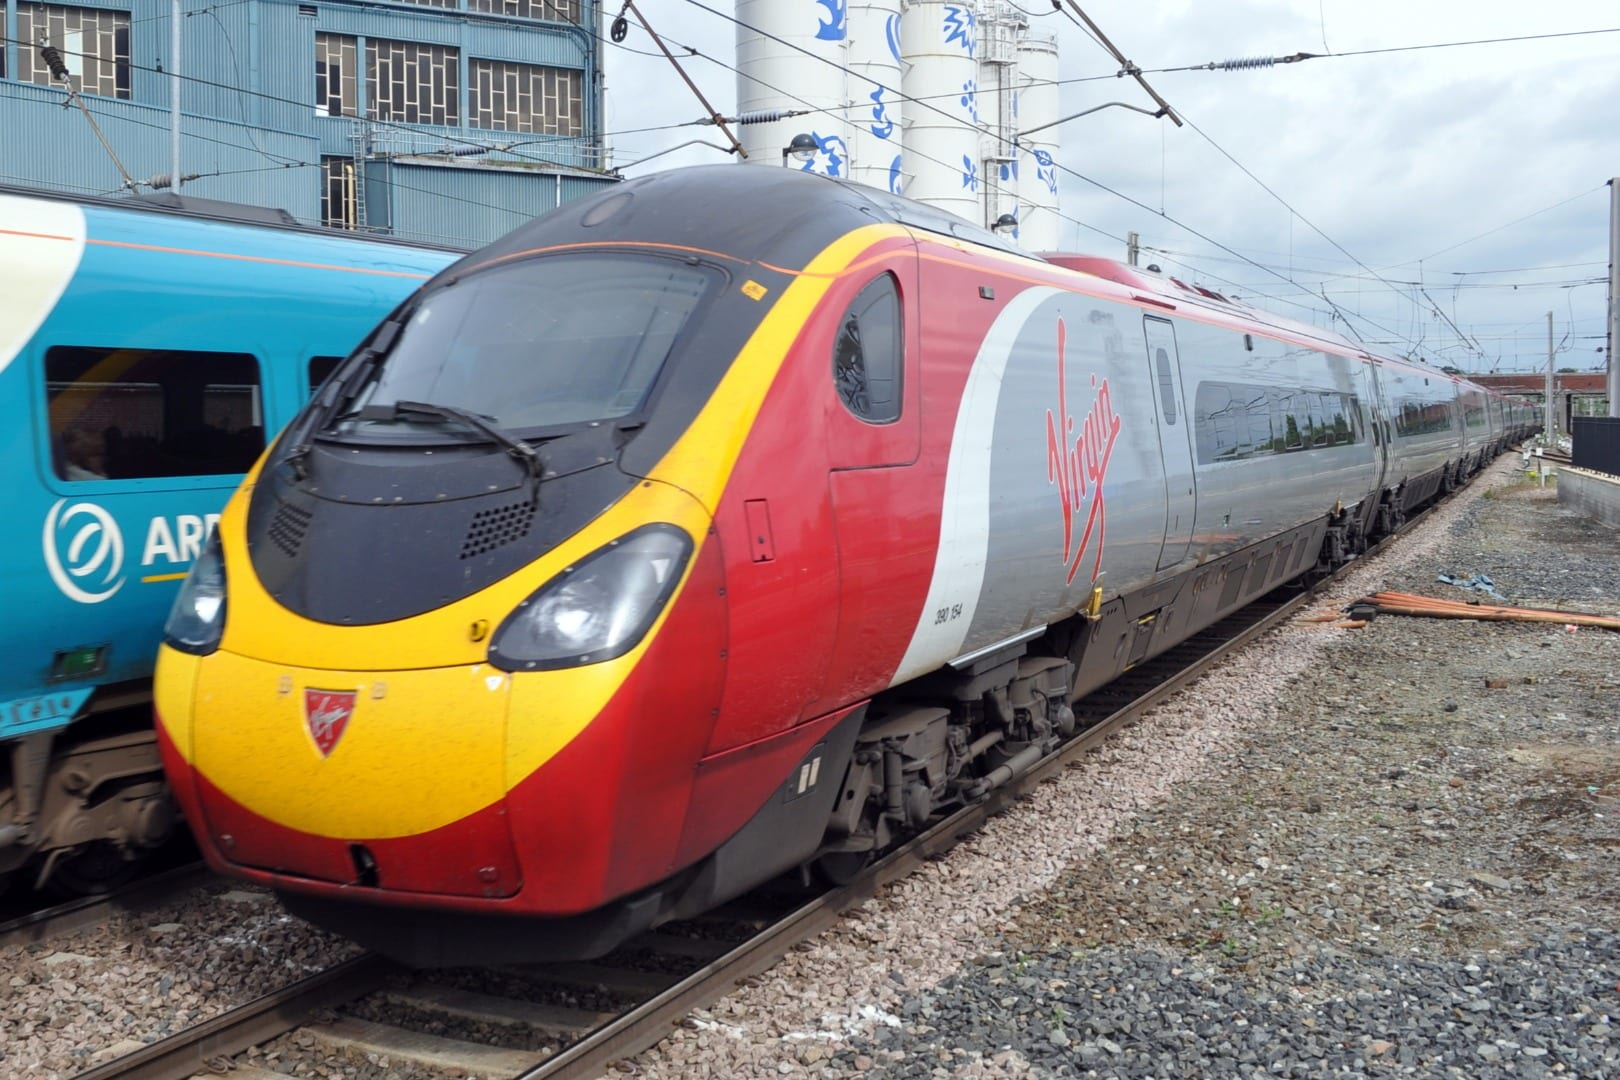 Pendolino train seen at Warrington, photo from Barrie C Woods